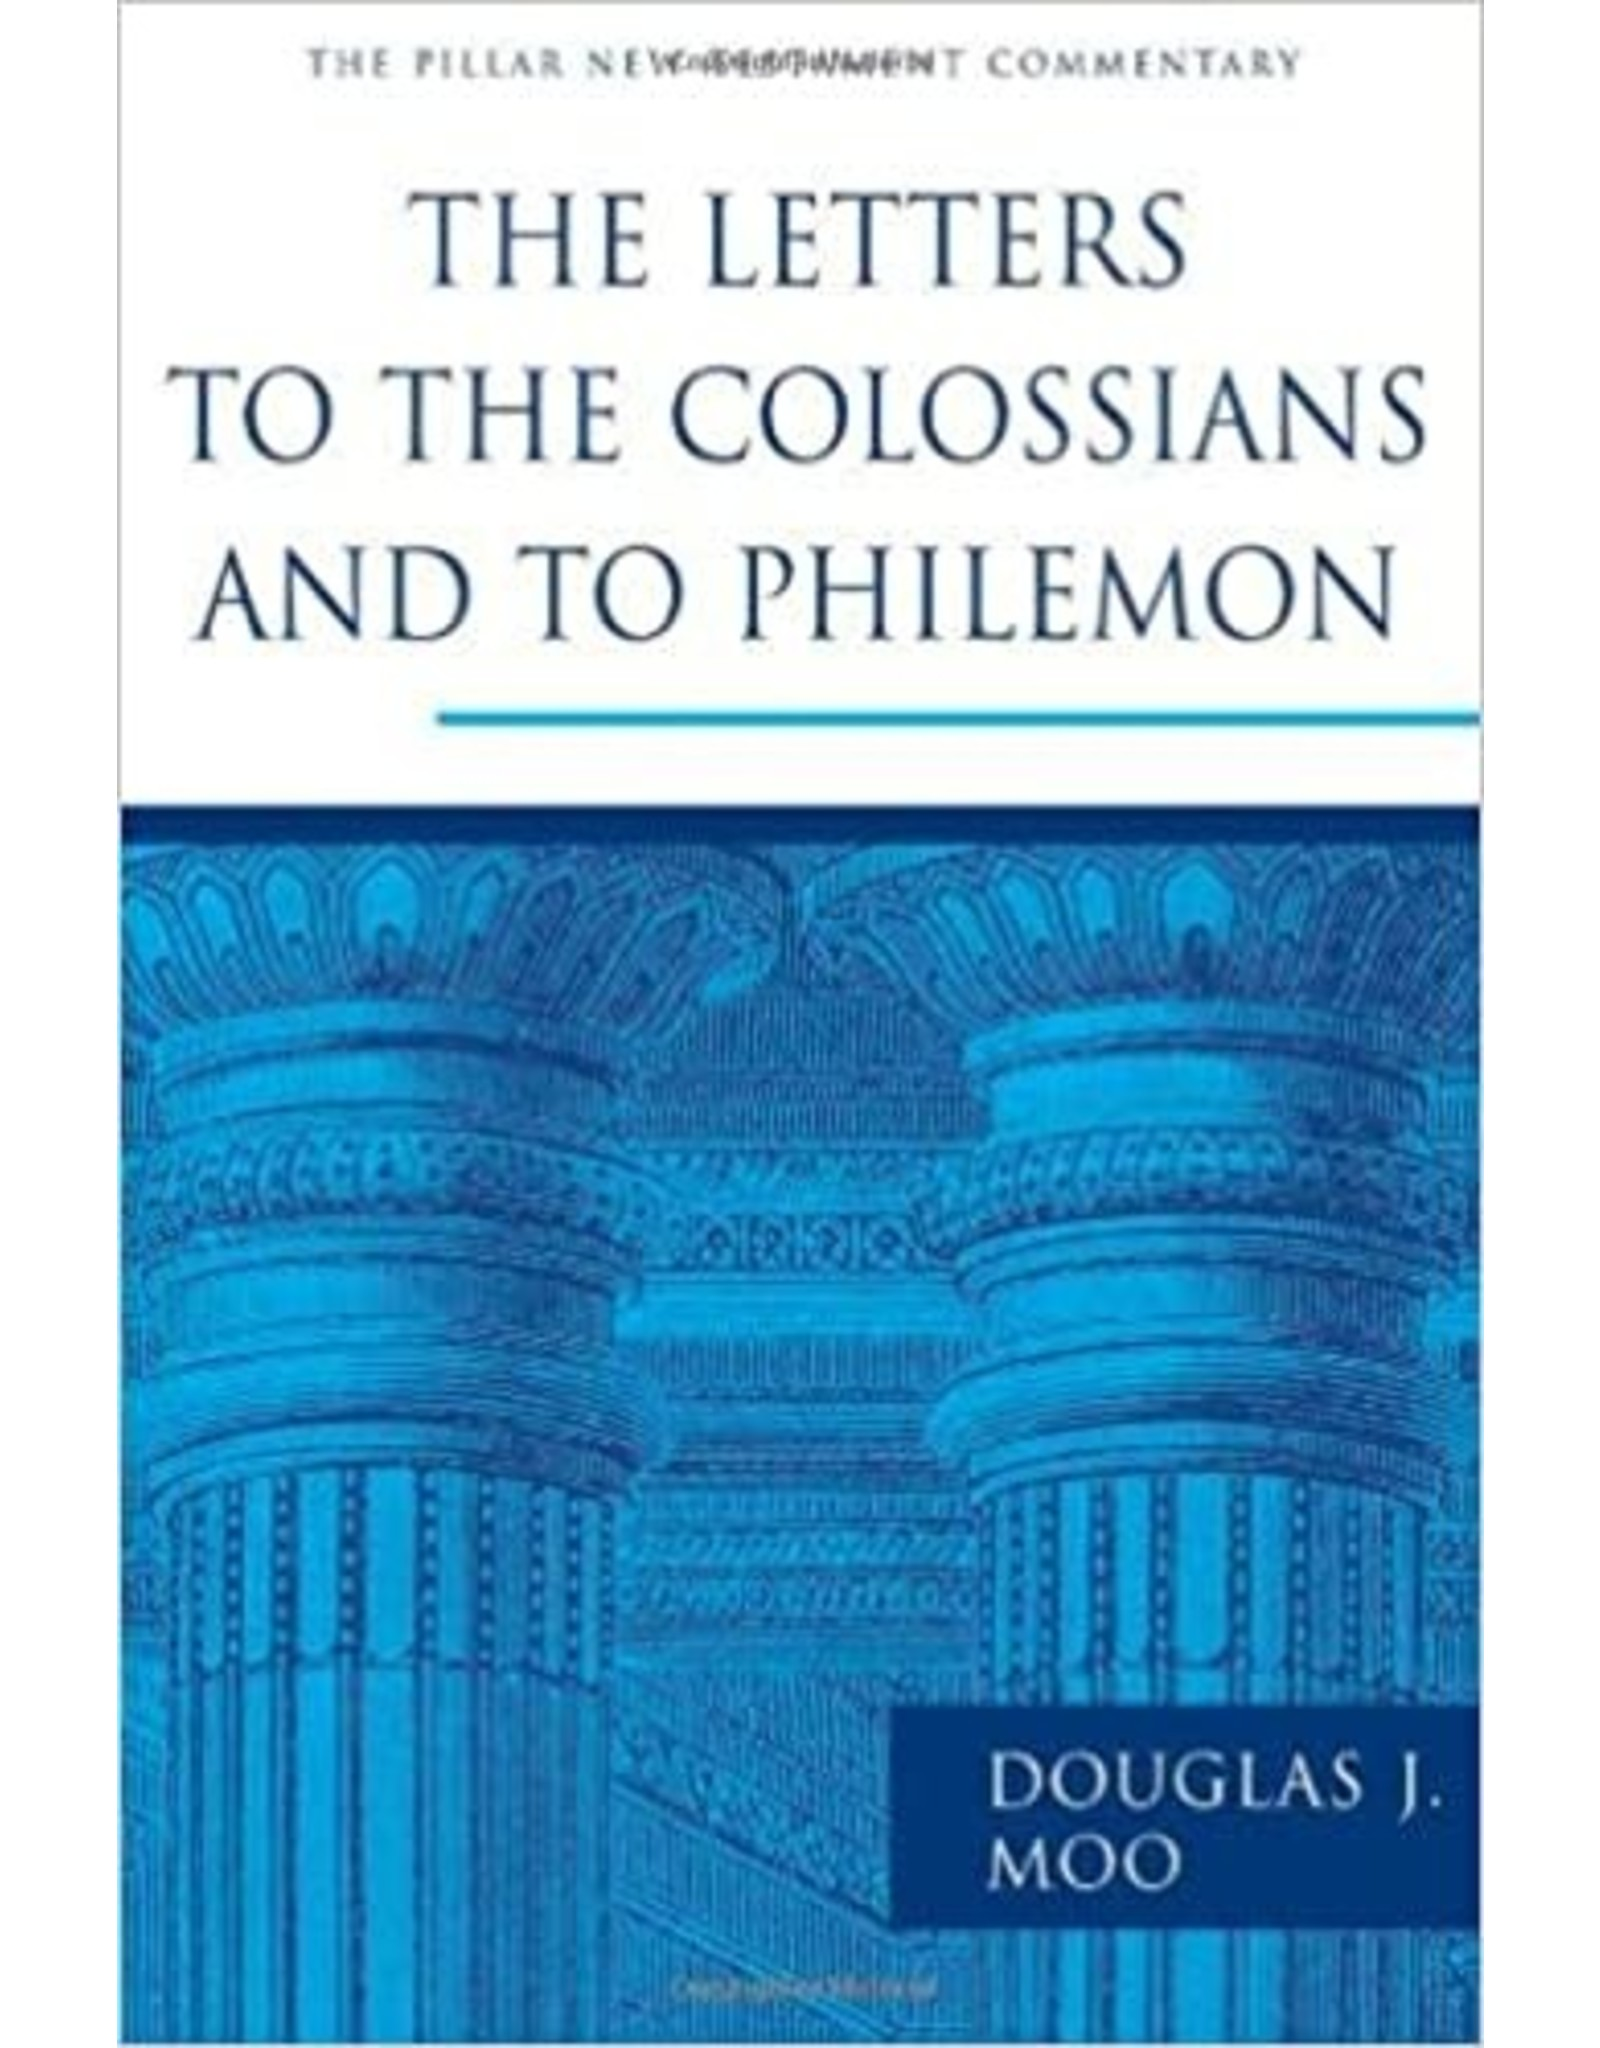 Moo Pillar Commentary - Colossians and Philemon